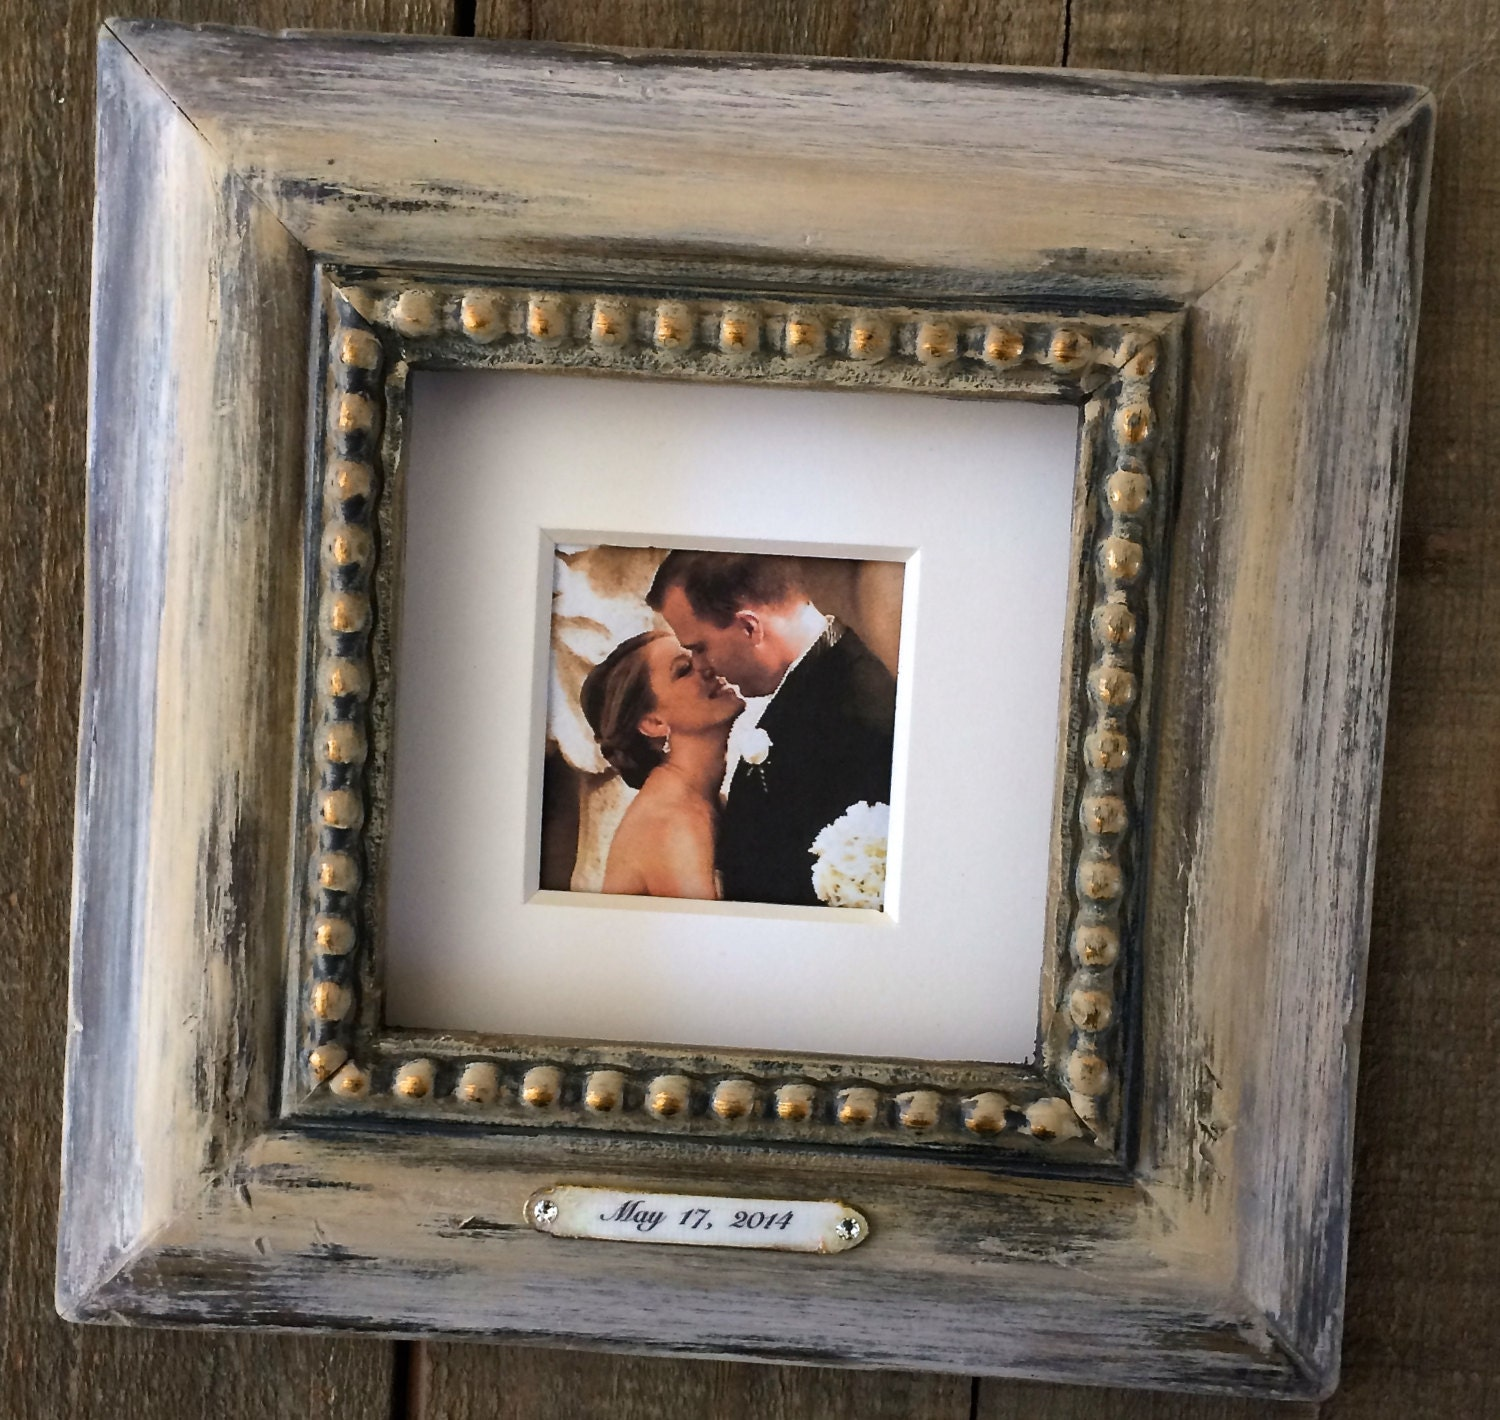 Wedding Registry Search By Name: Photo Frame Personalized Wedding New Baby Family Portrait